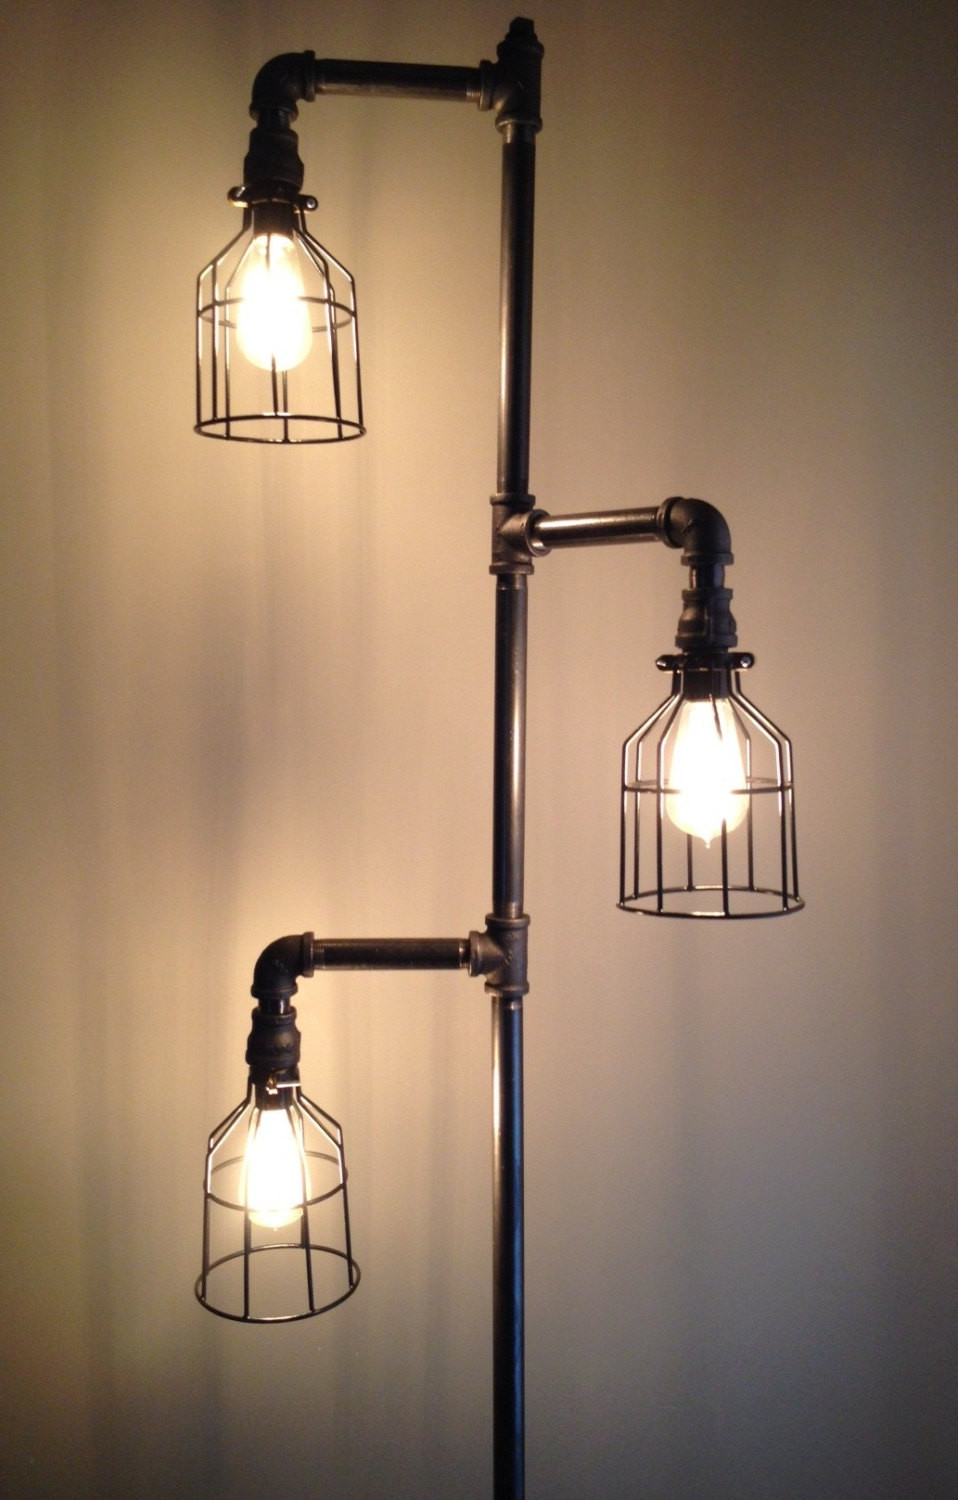 Diy Lamp  Inexpensive DIY Floor Lamp Ideas to Make at Home